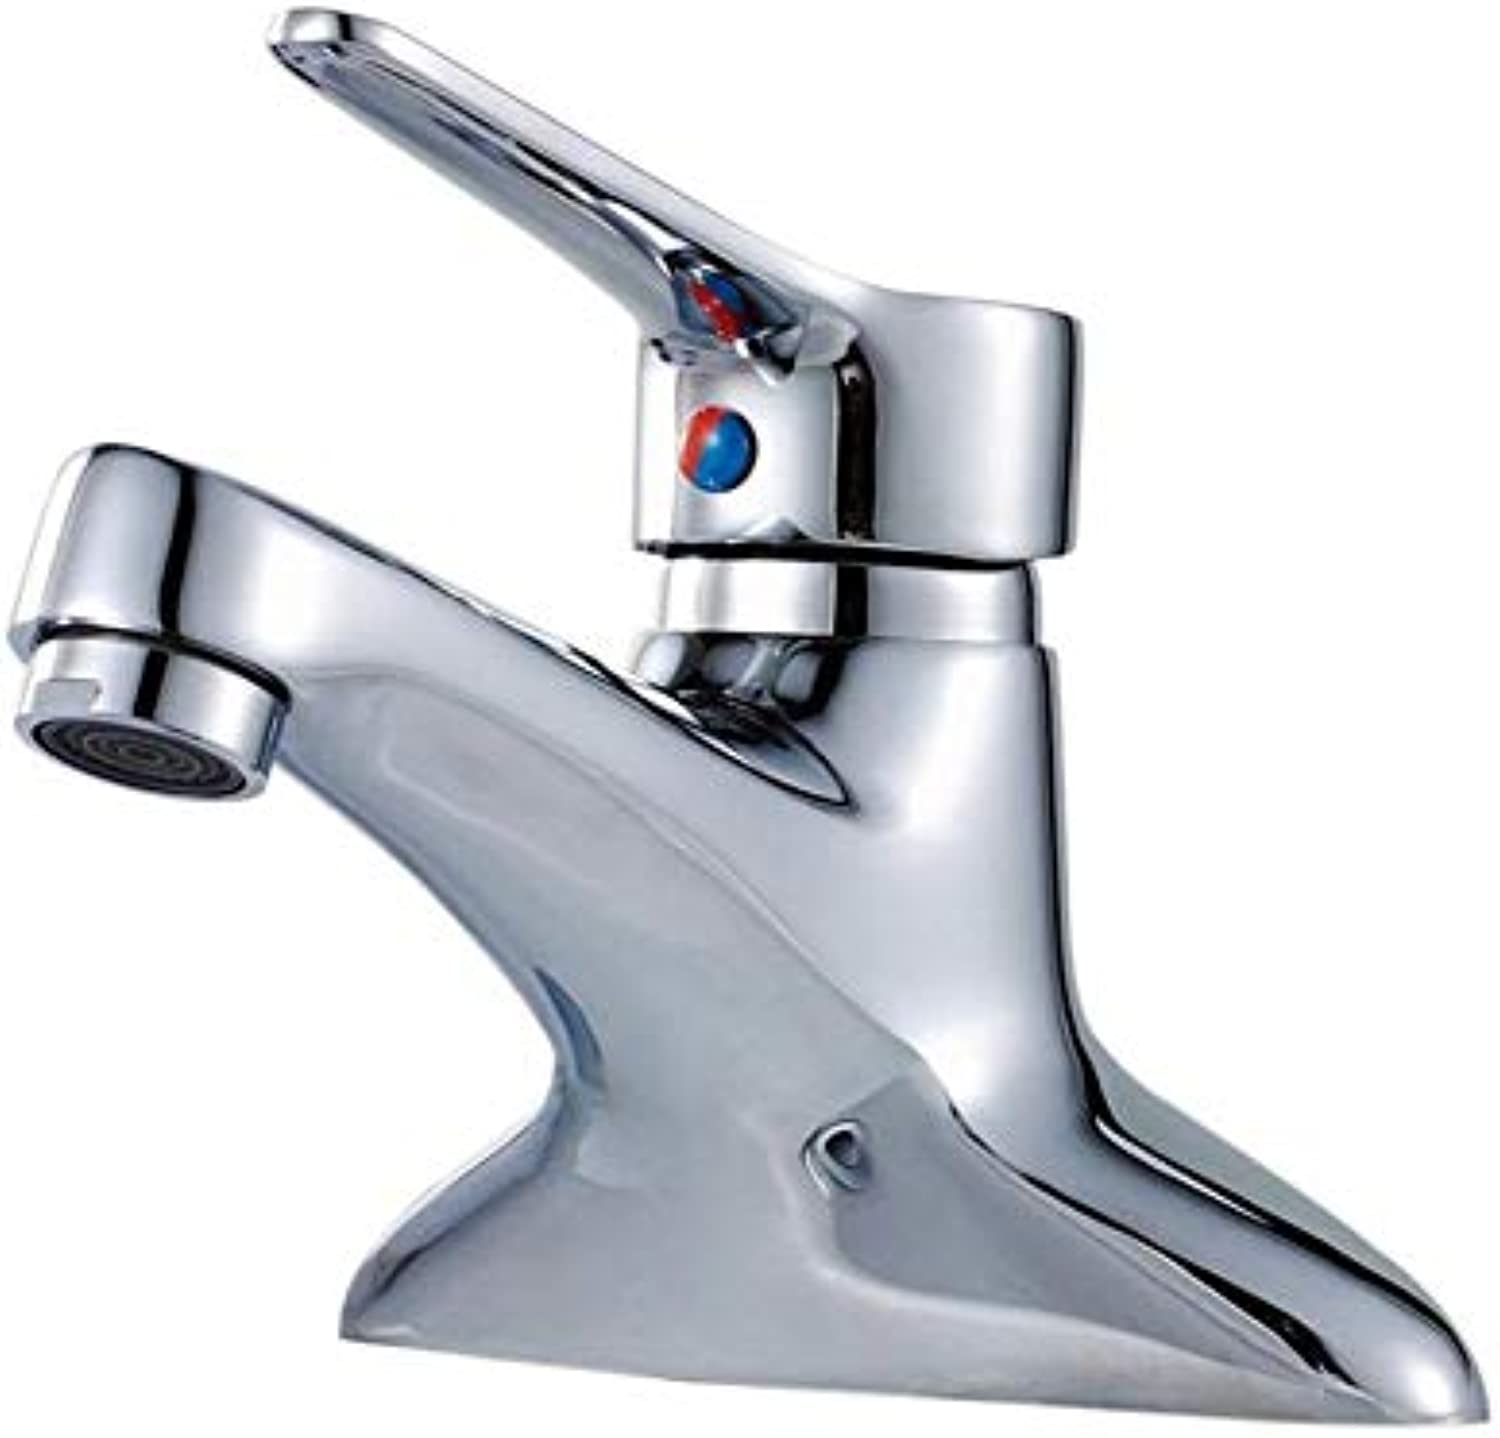 Taps Kitchen Sinkantique Bathroom redating Basin Faucet Basin Double Hole Three Hole Faucet Hot and Cold